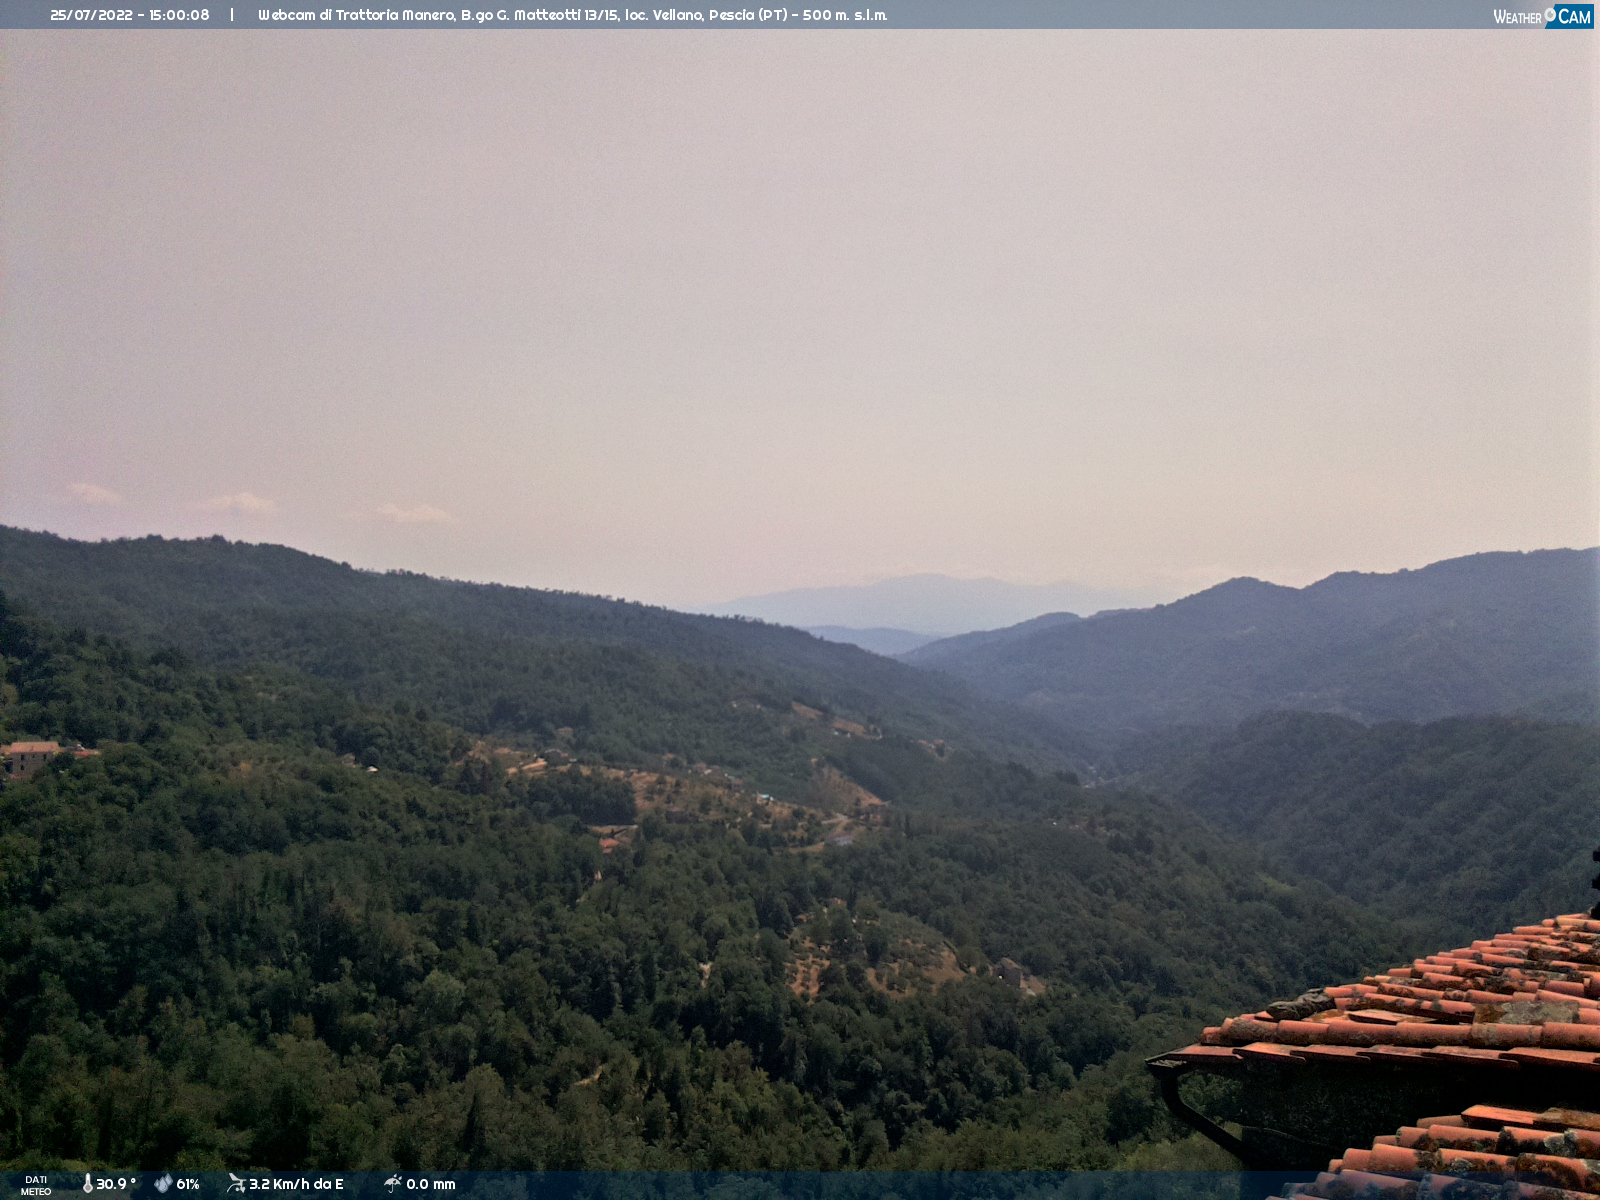 Webcam Vellano a cura di www.meteovellano.it